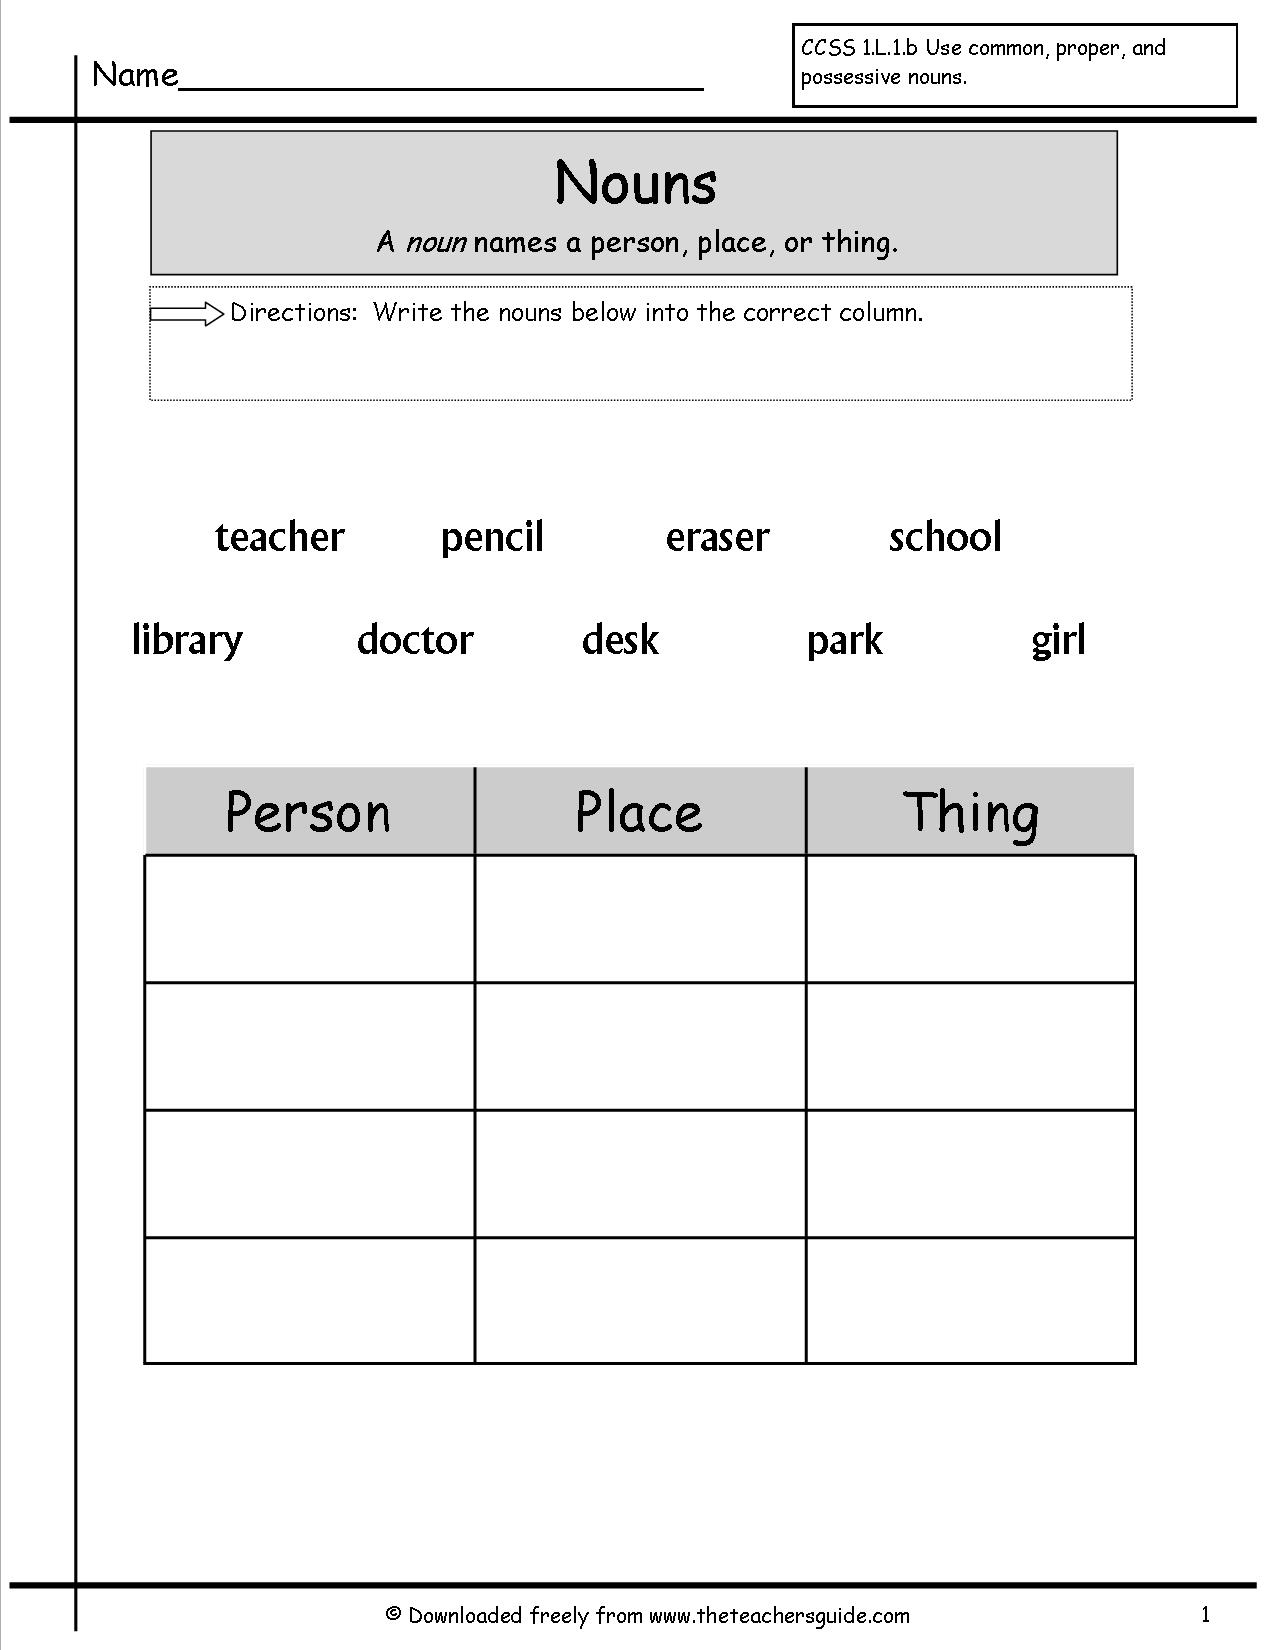 17 Best Images Of Prefix Suffix Worksheet Science